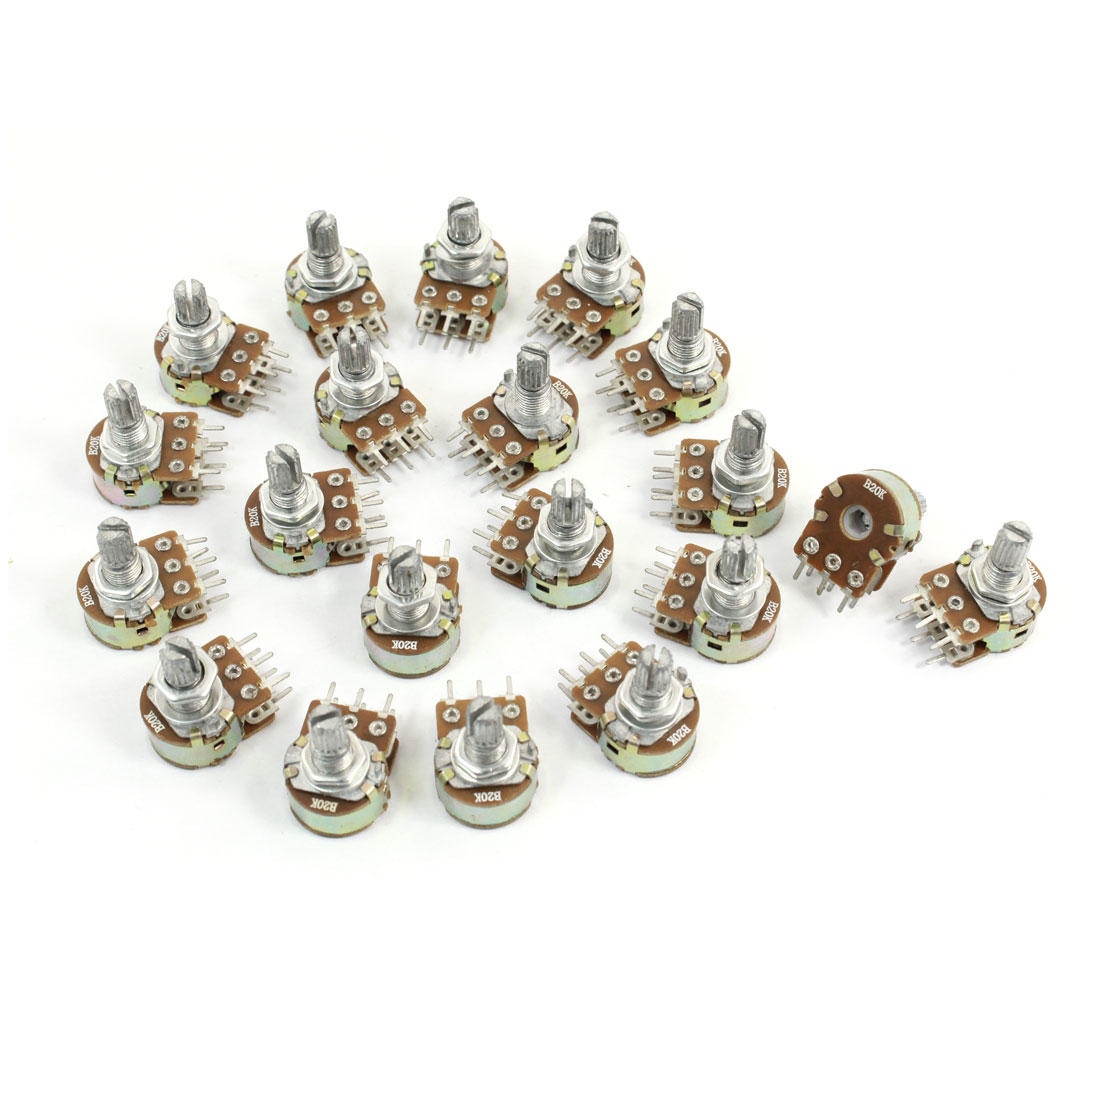 20 Pcs 20K Ohm Knurled Shaft Adjust Top Dual Linear Potentiometers AC 250V